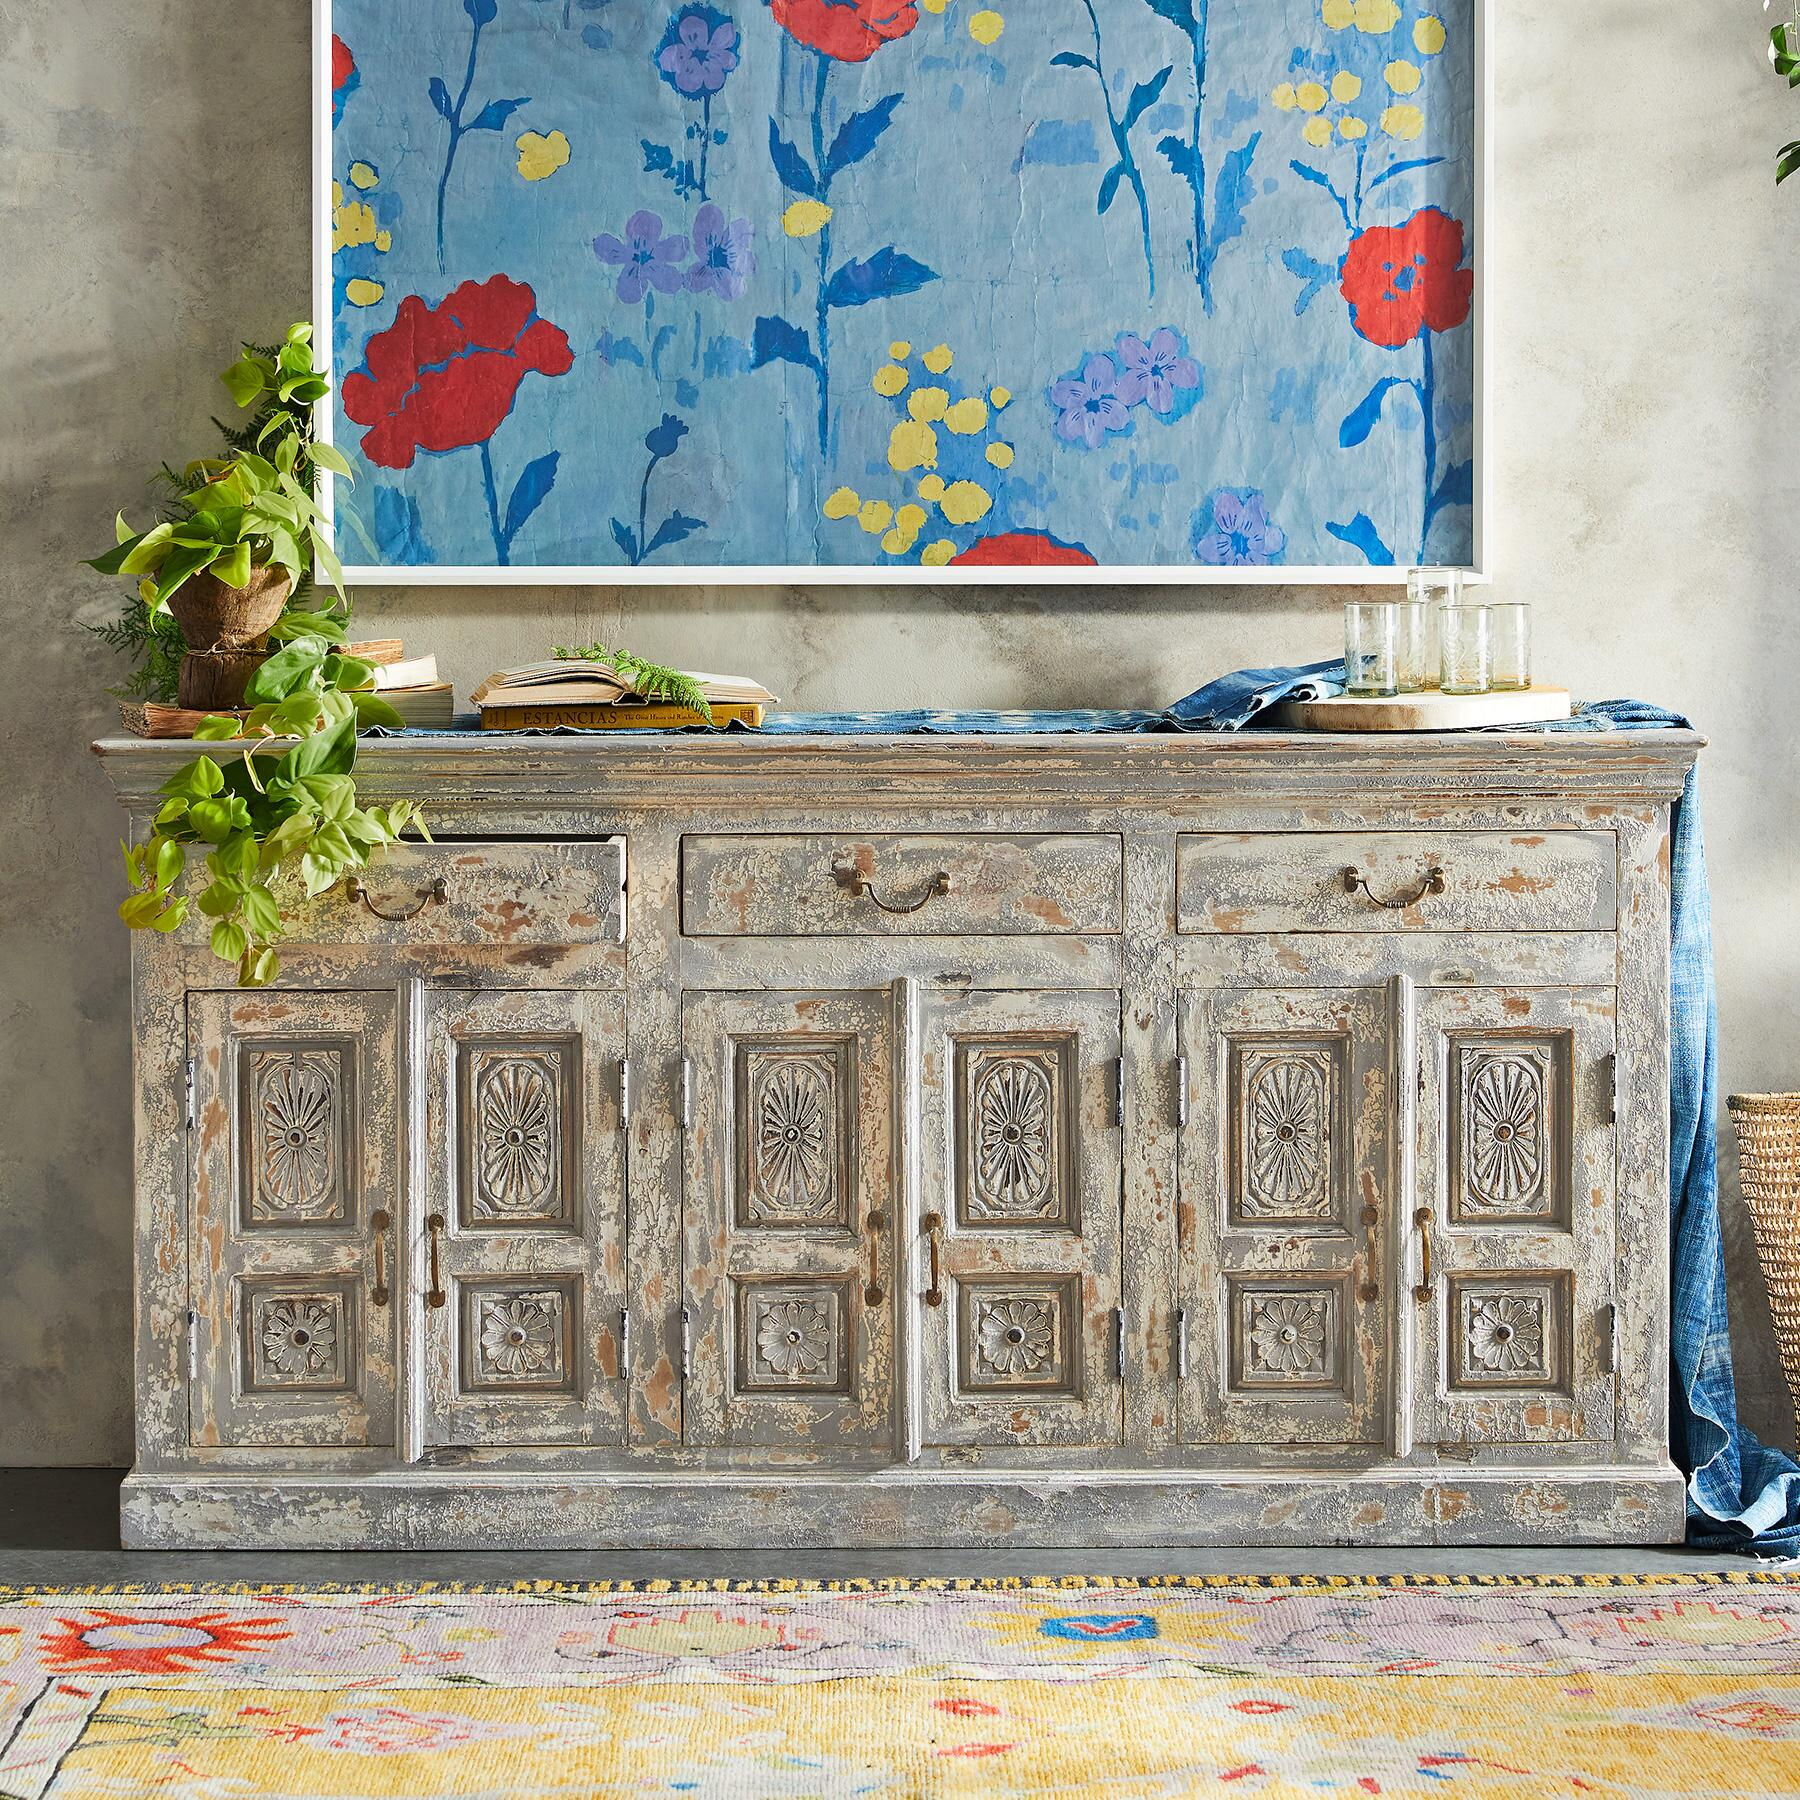 Ansel large console - Sundance Catalog Home Decor + A Few of My Artisan Favorite Things!